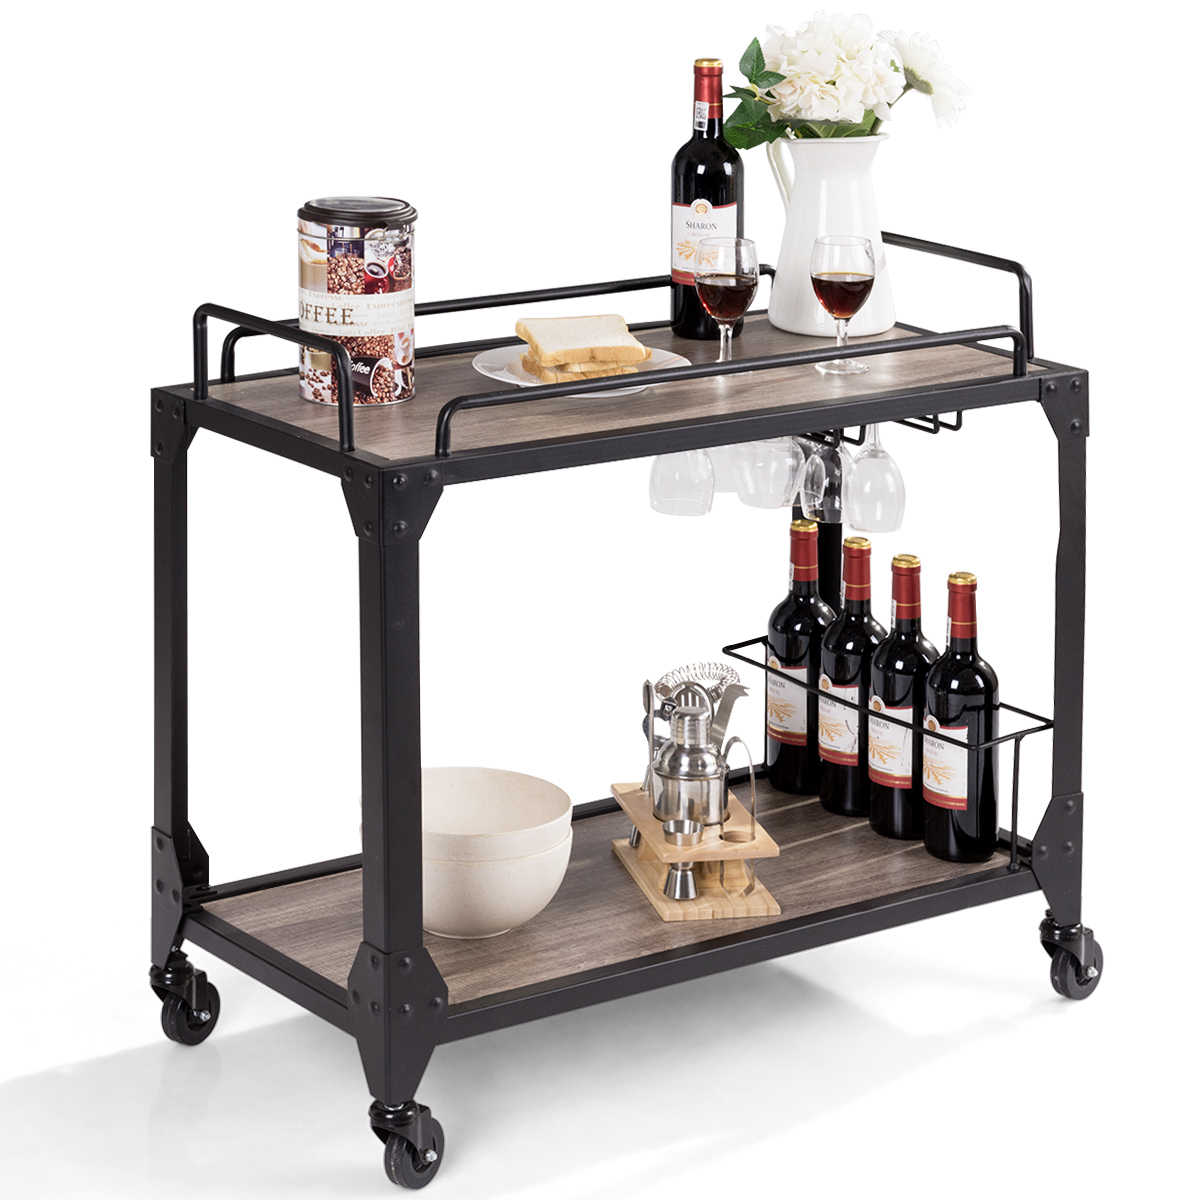 Costway 2 Tier Rolling Bar Serving Cart